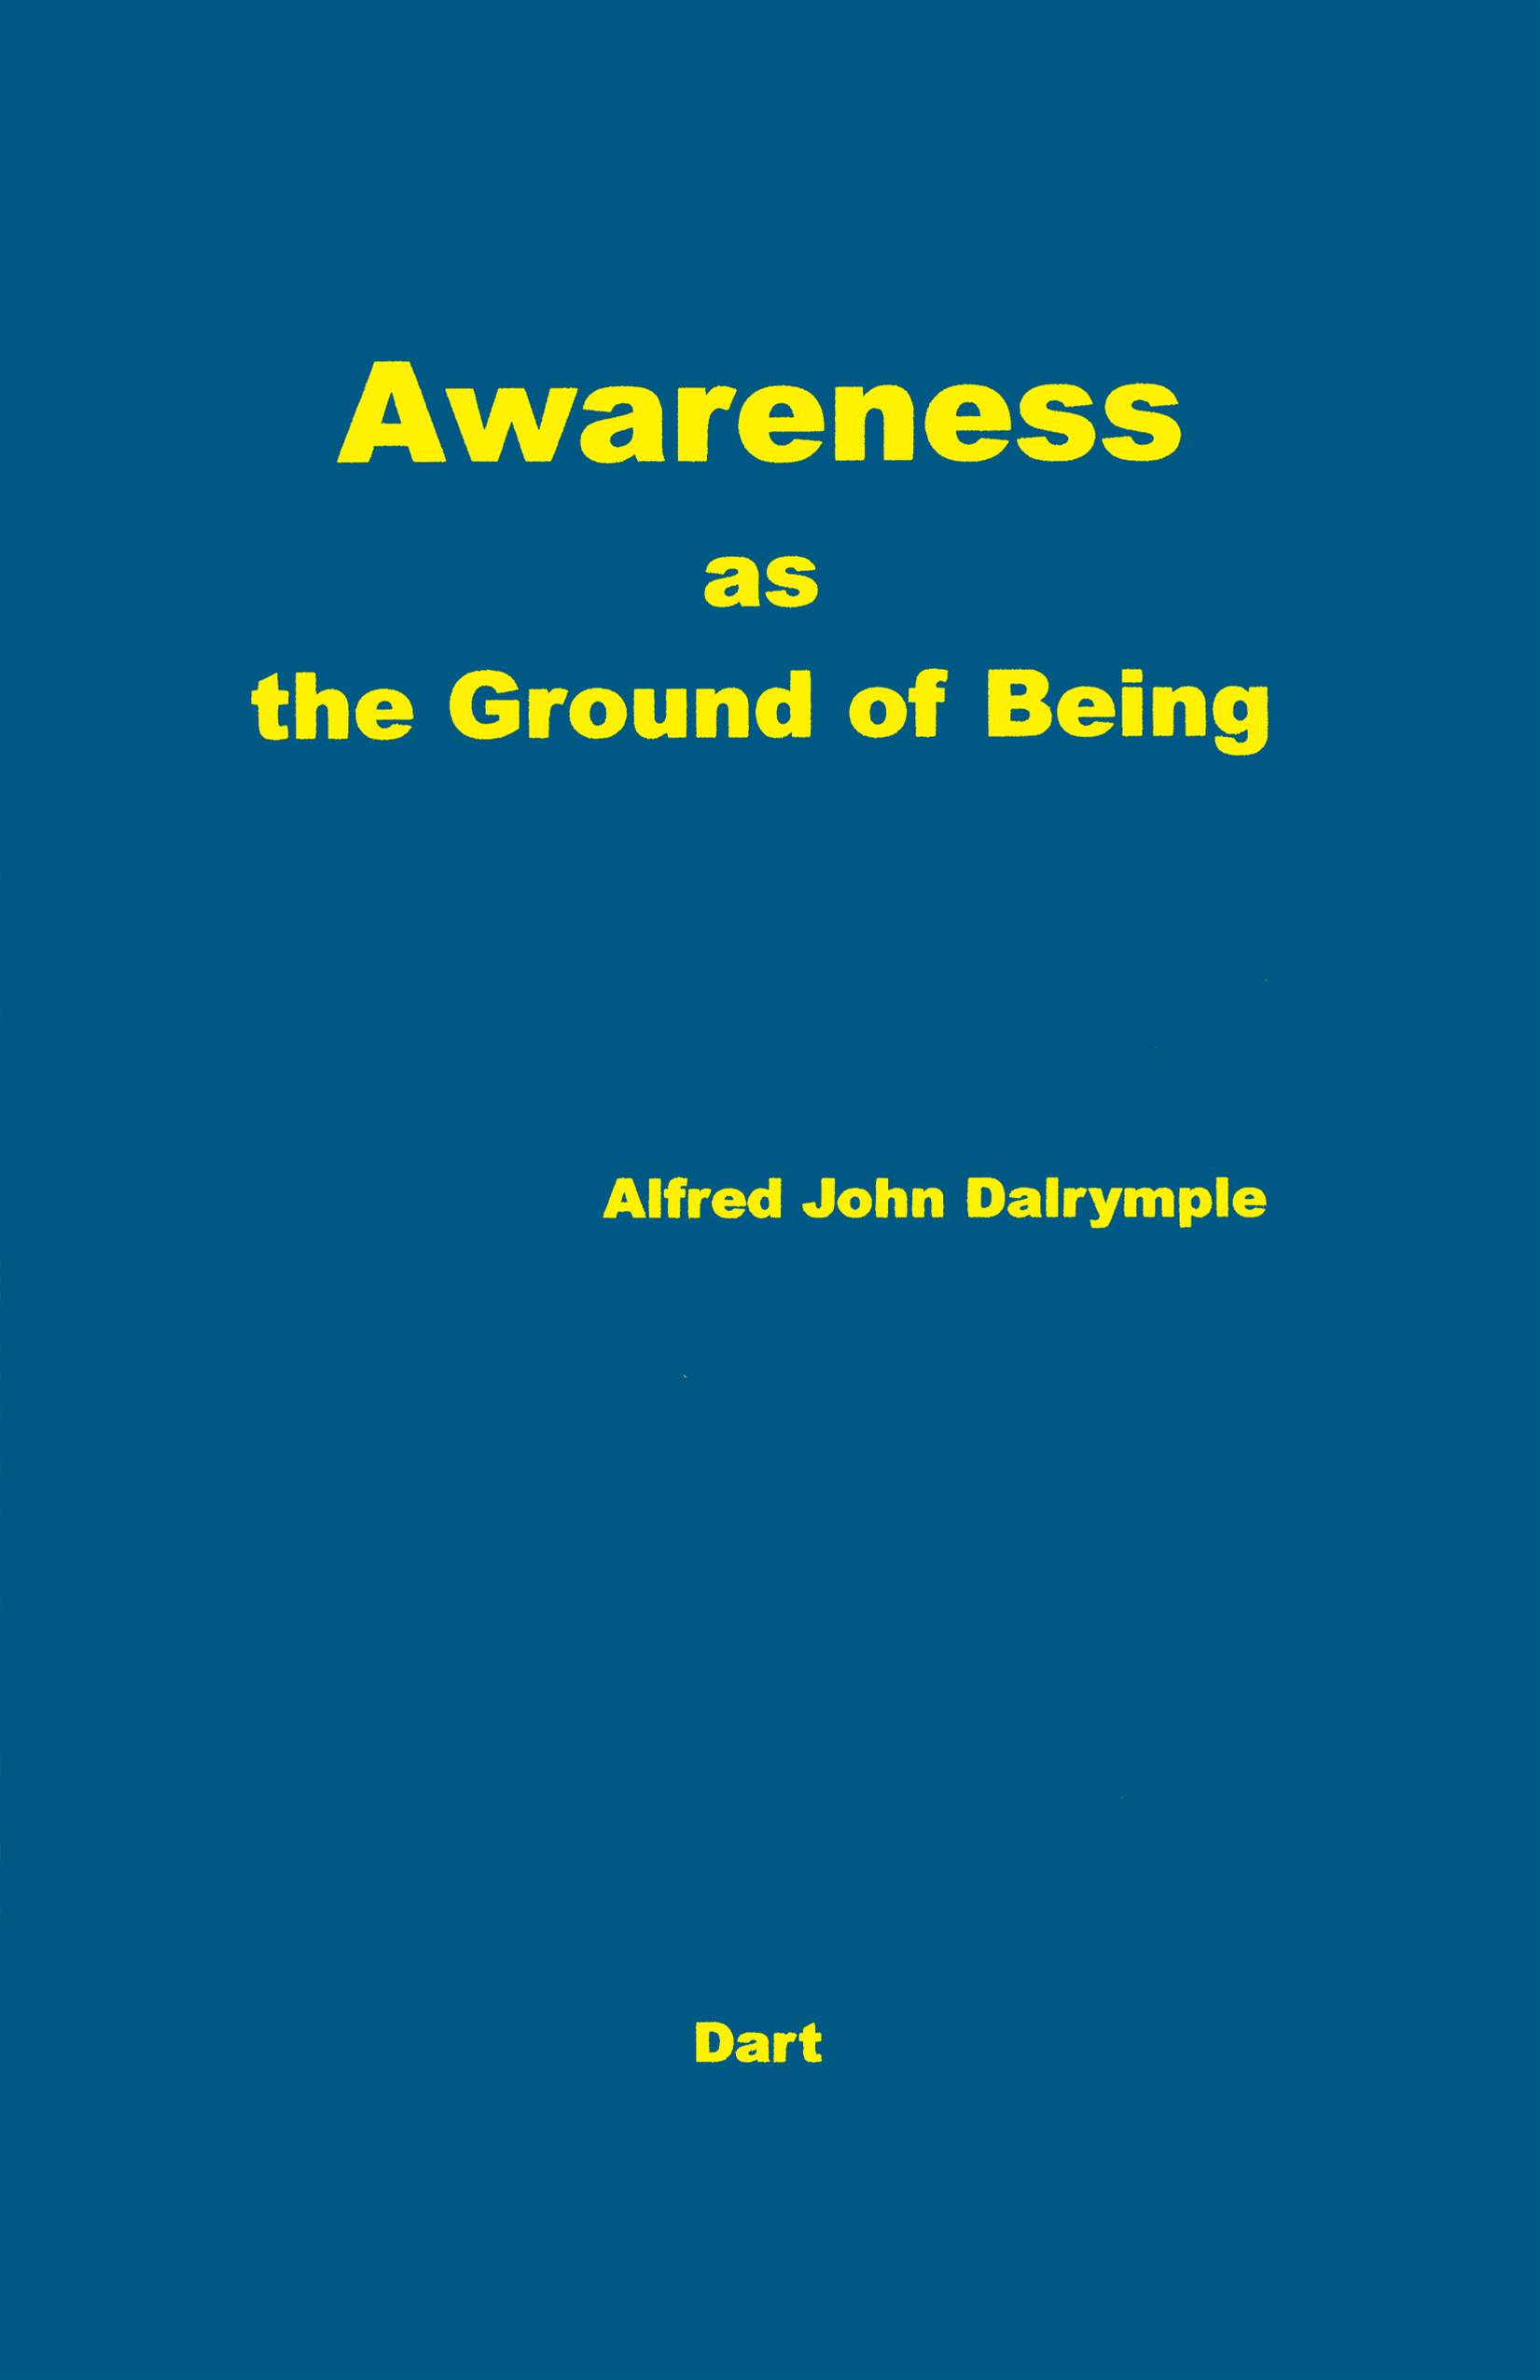 Awareness As the Ground of Being By: Alfred John Dalrymple